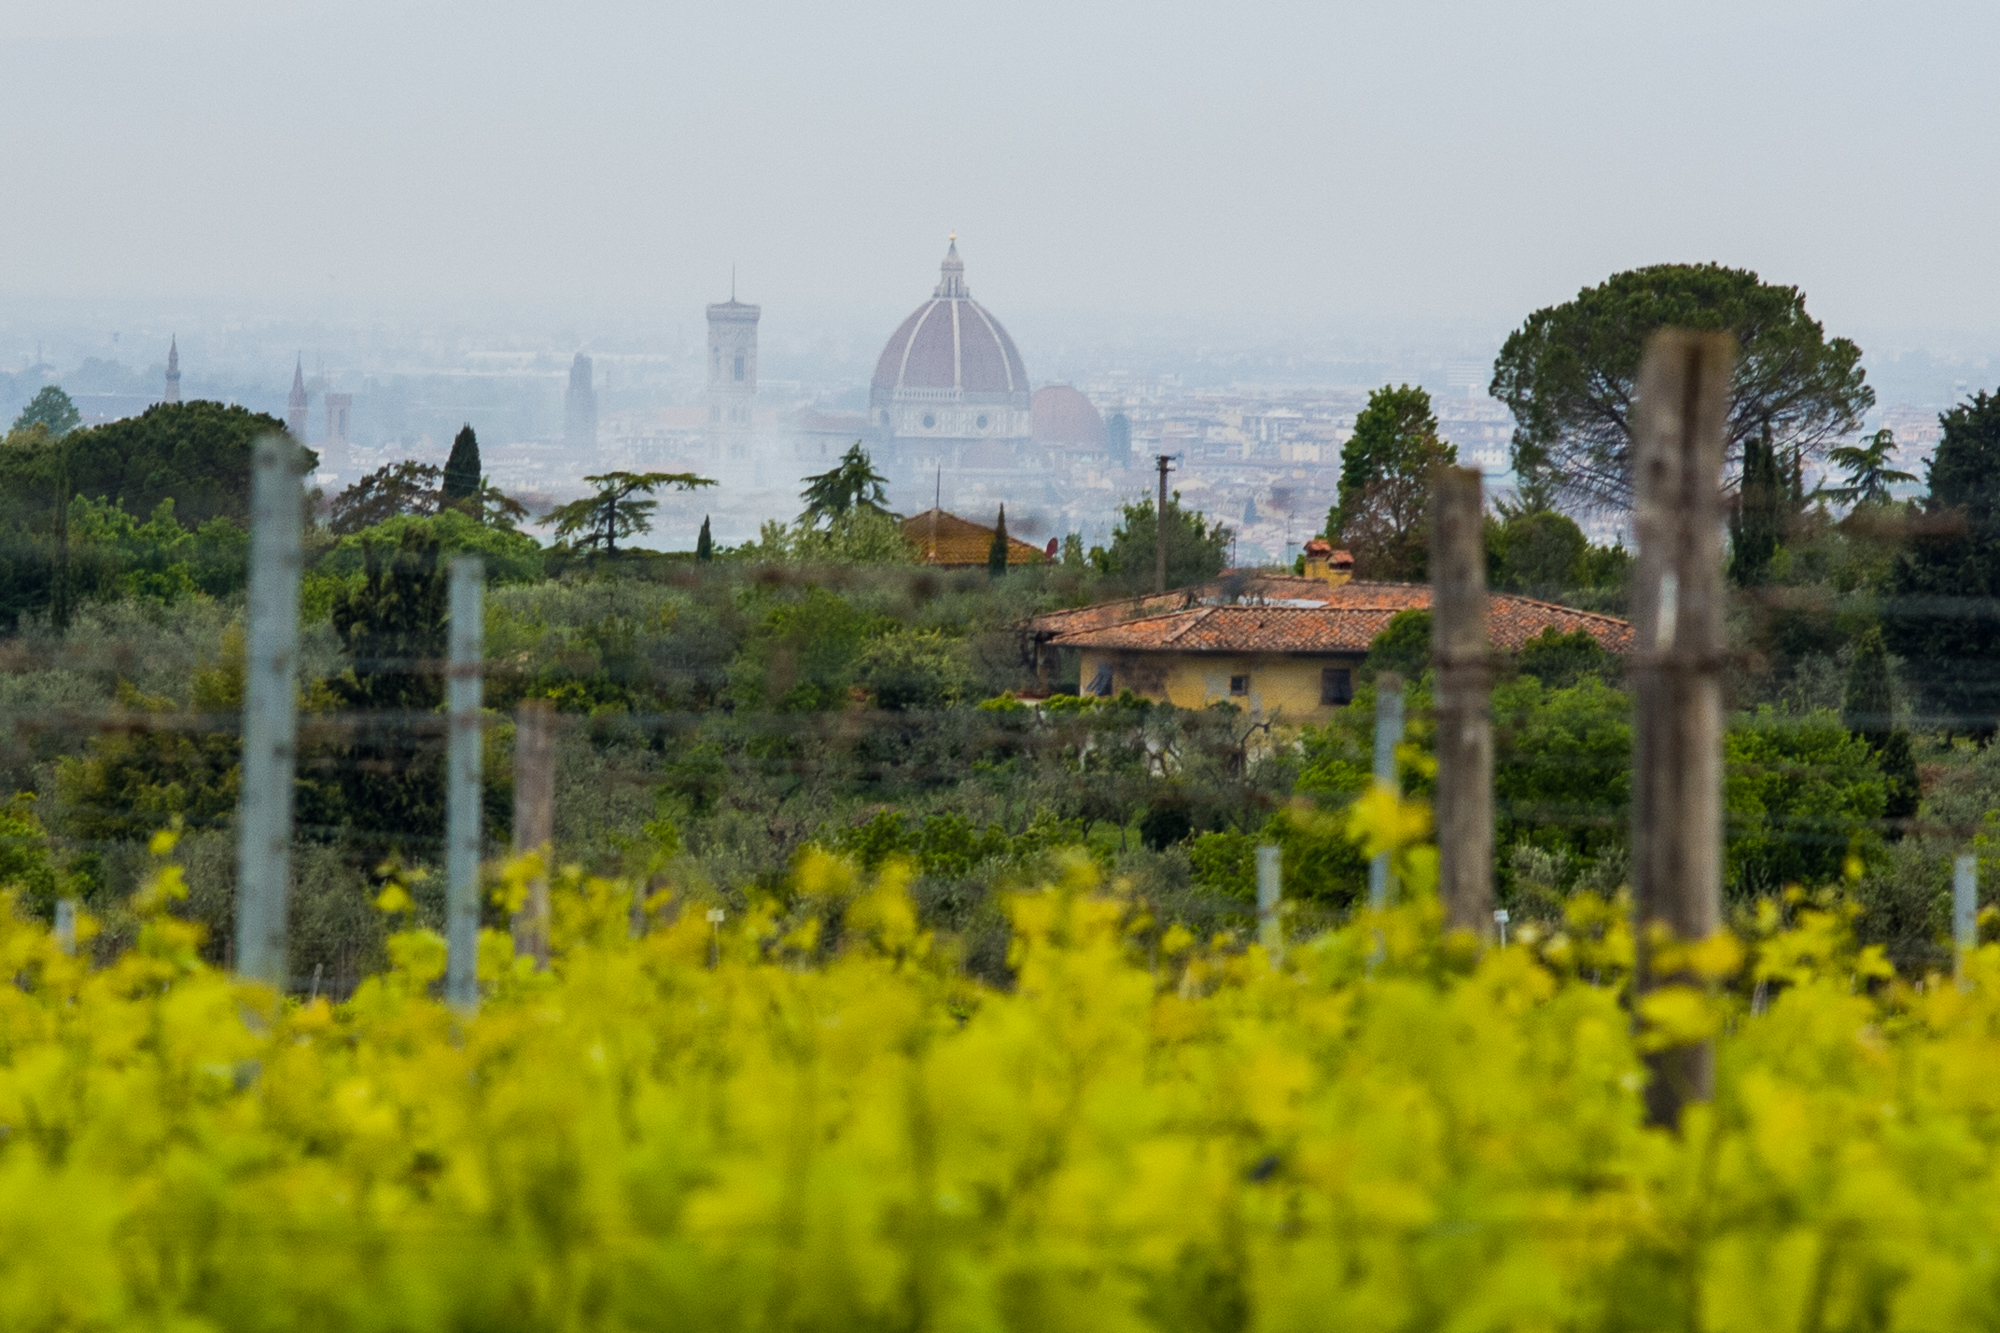 The Duomo from the Villa